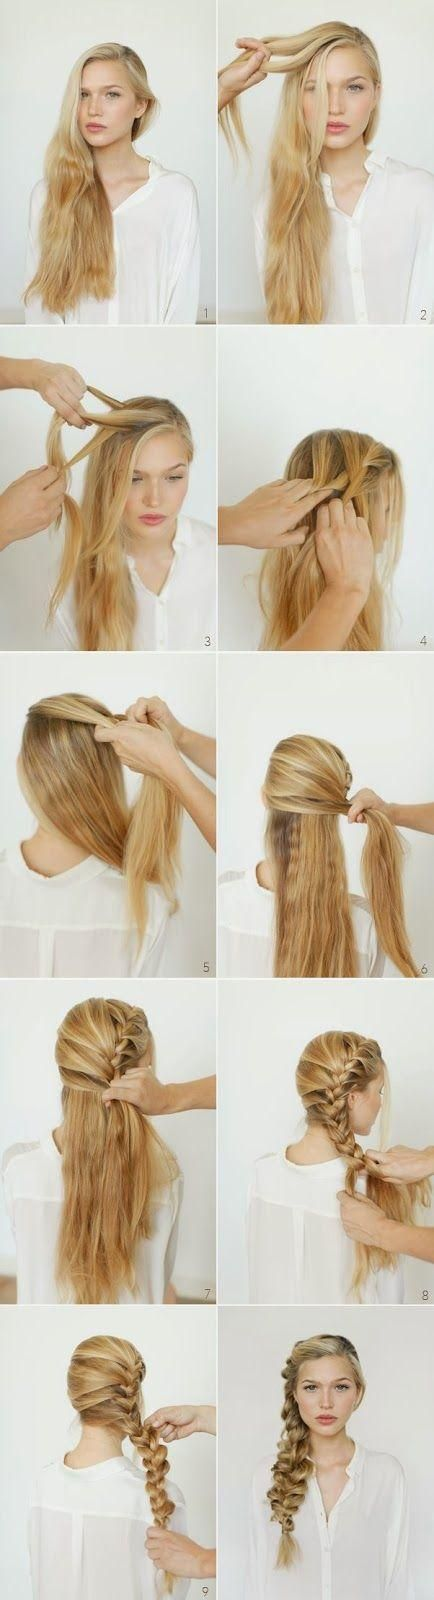 The Romantic Side Braid Tutorial.